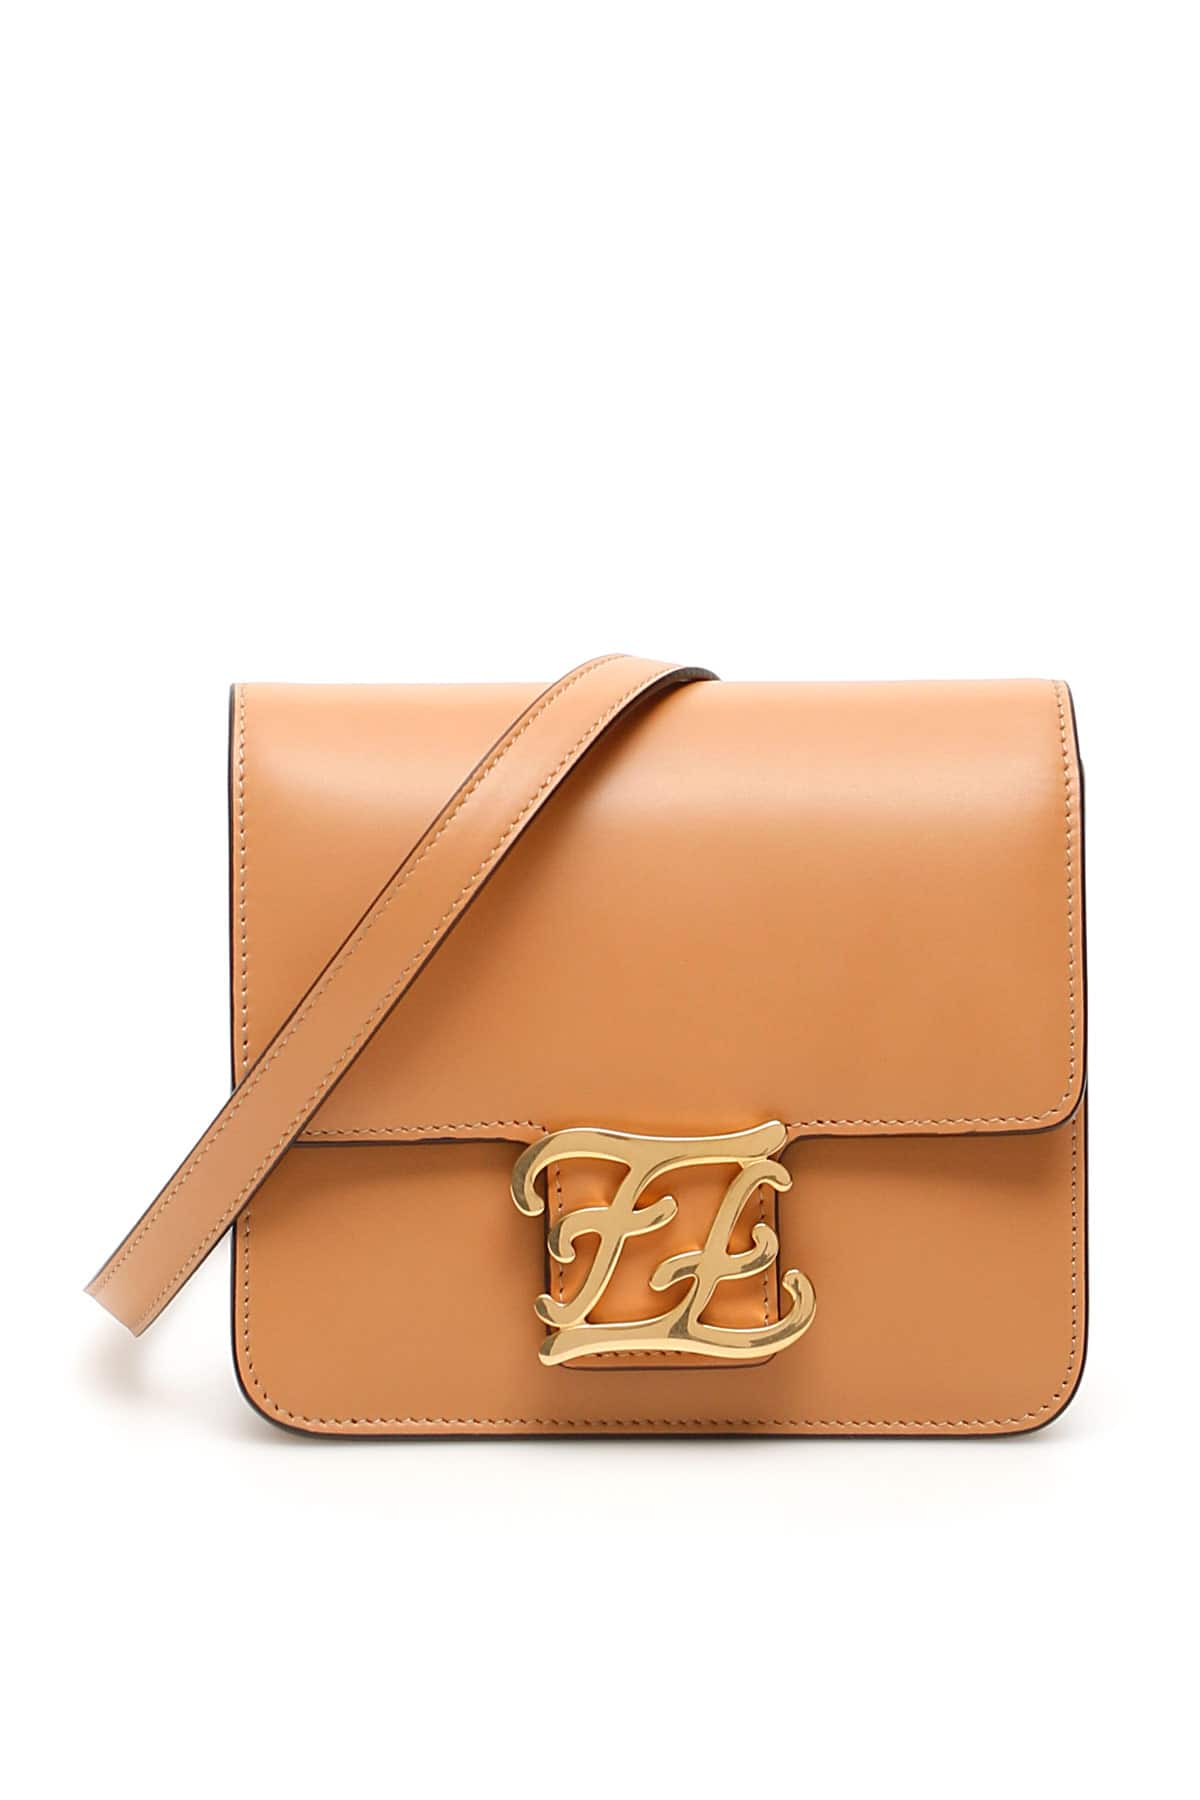 Fendi leather bag with FF Karligraphy buckle on the flap. It features a magnetic closure, removable